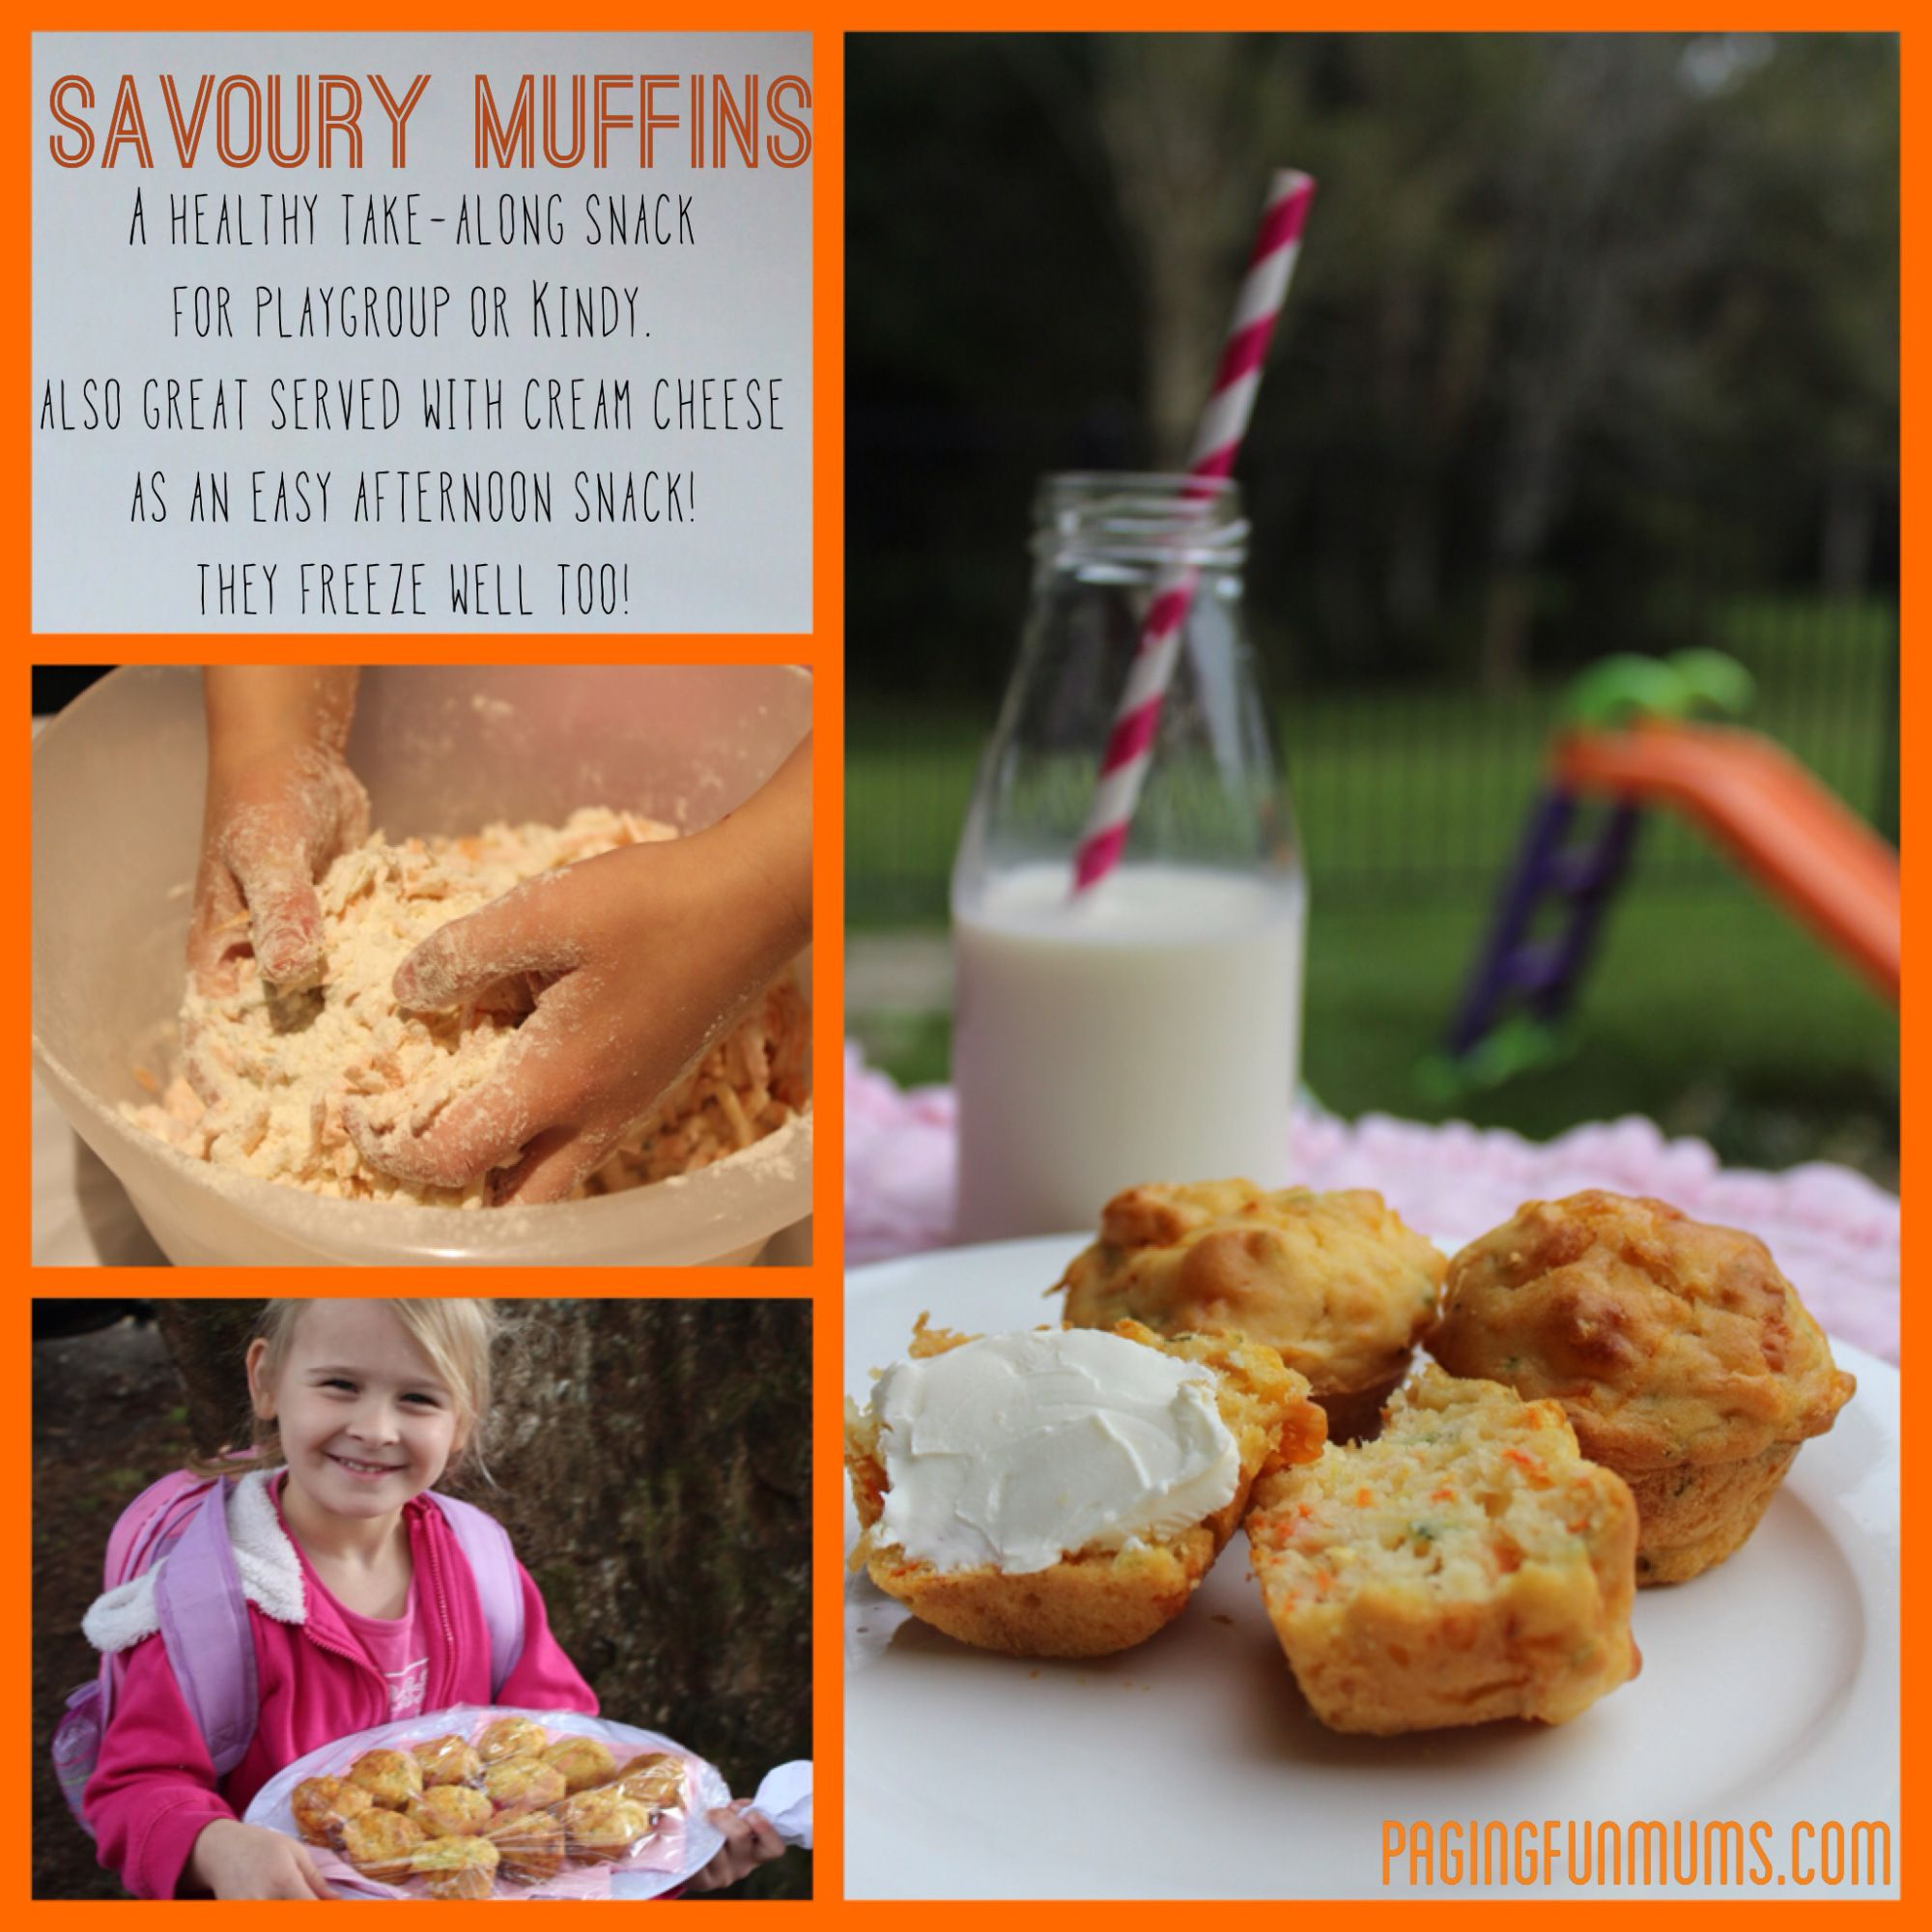 Savoury Muffins - perfect for school or playgroup.